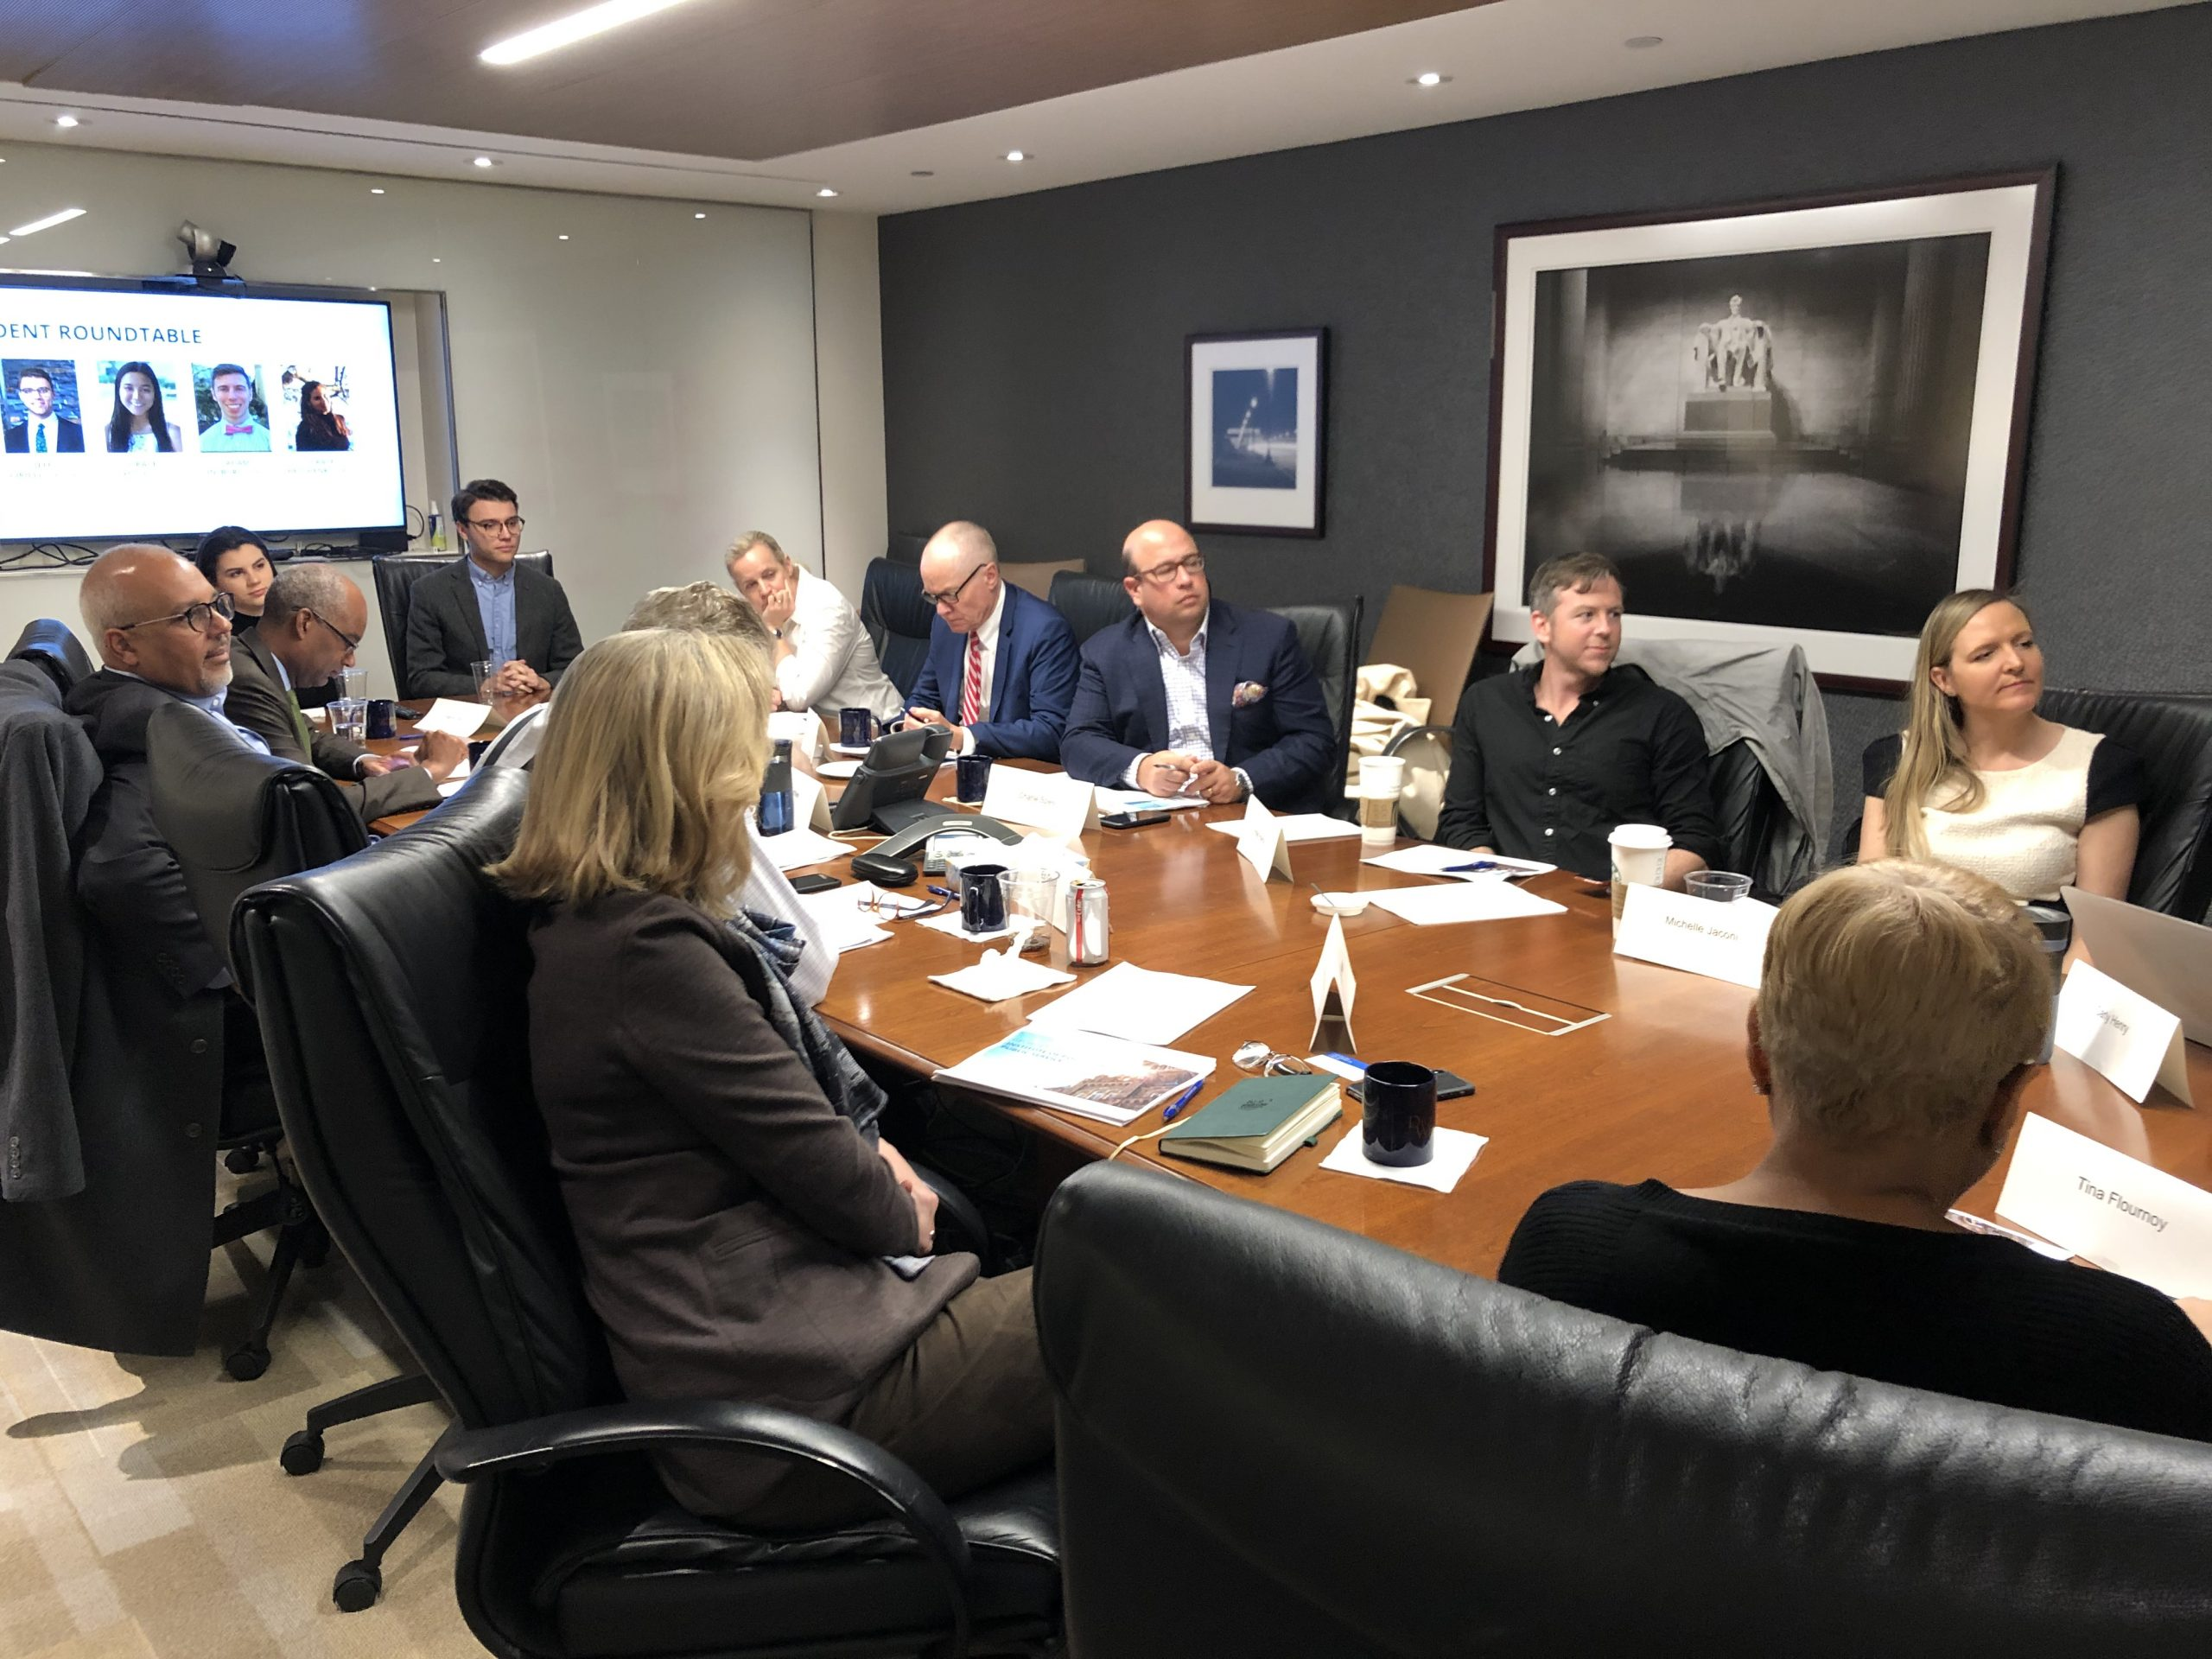 Event participants around a large conference table watching Zoom screen